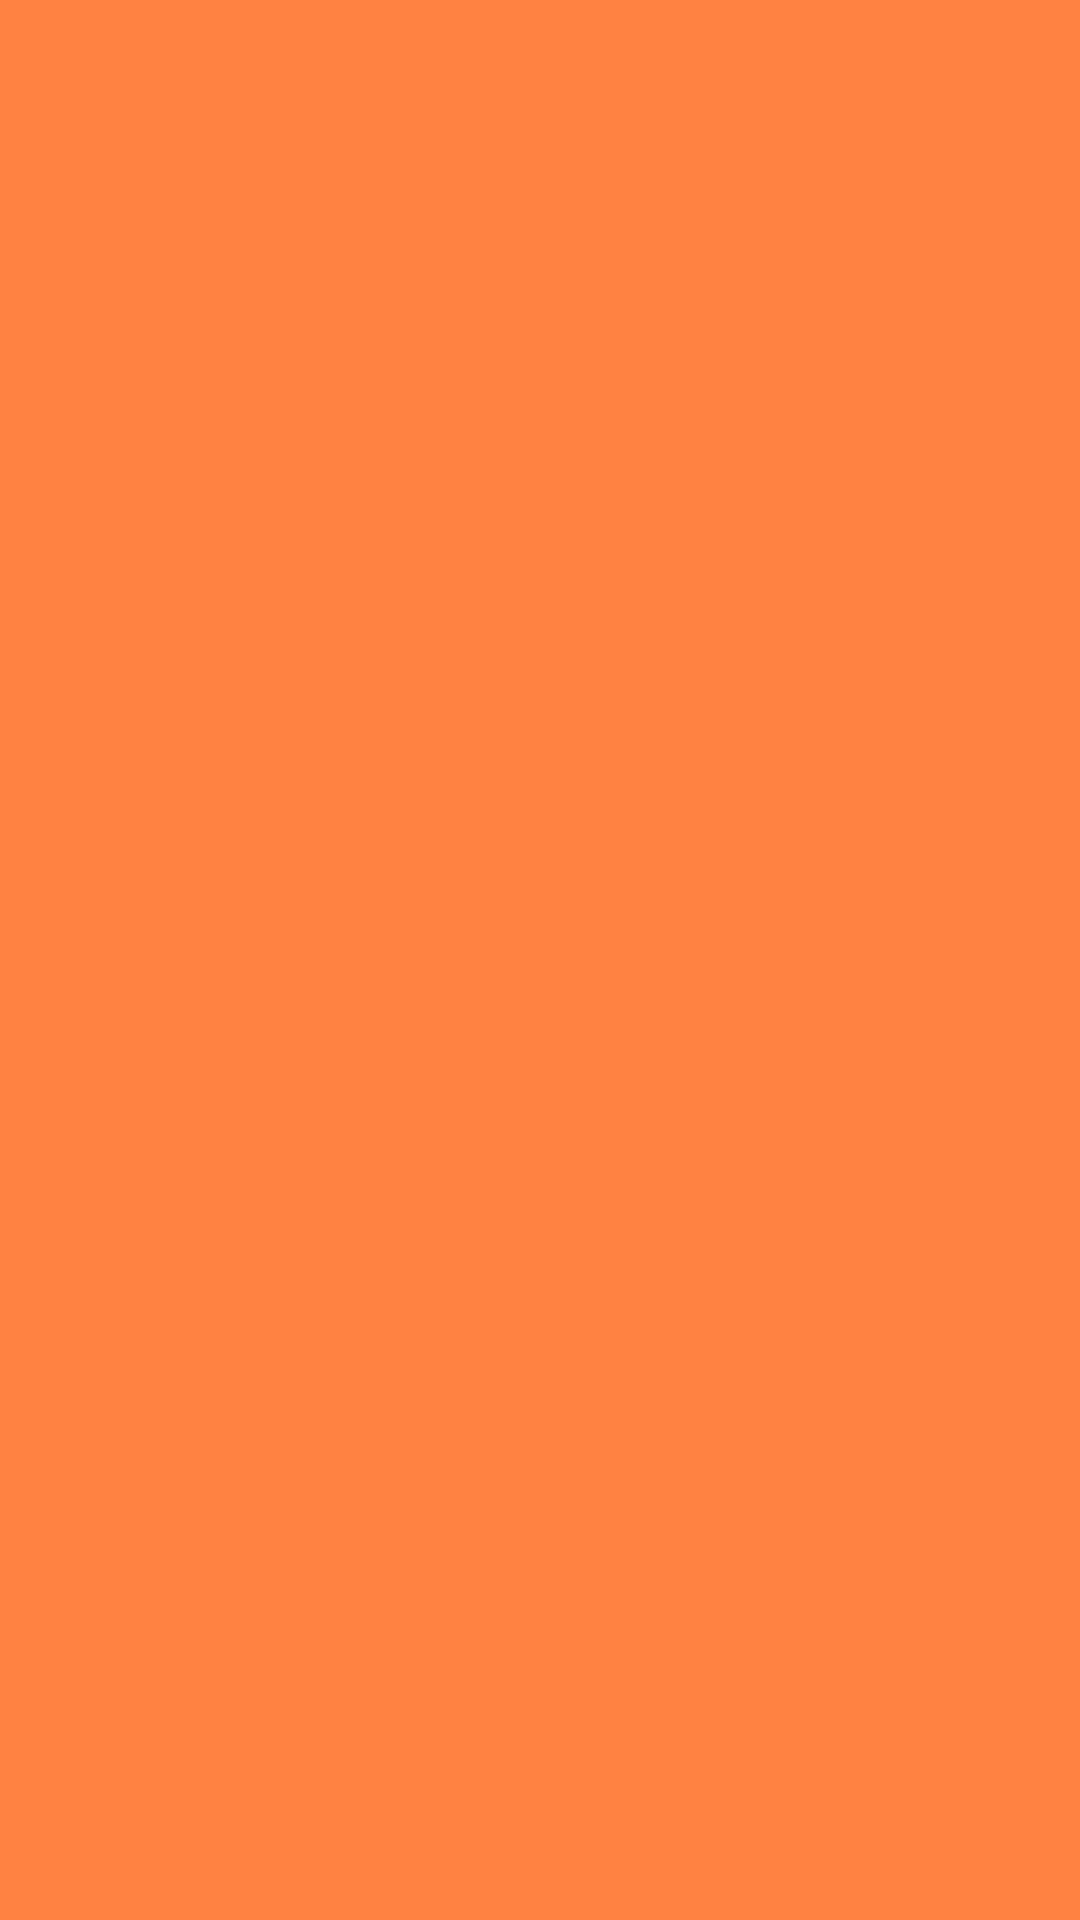 1080x1920 Mango Tango Solid Color Background